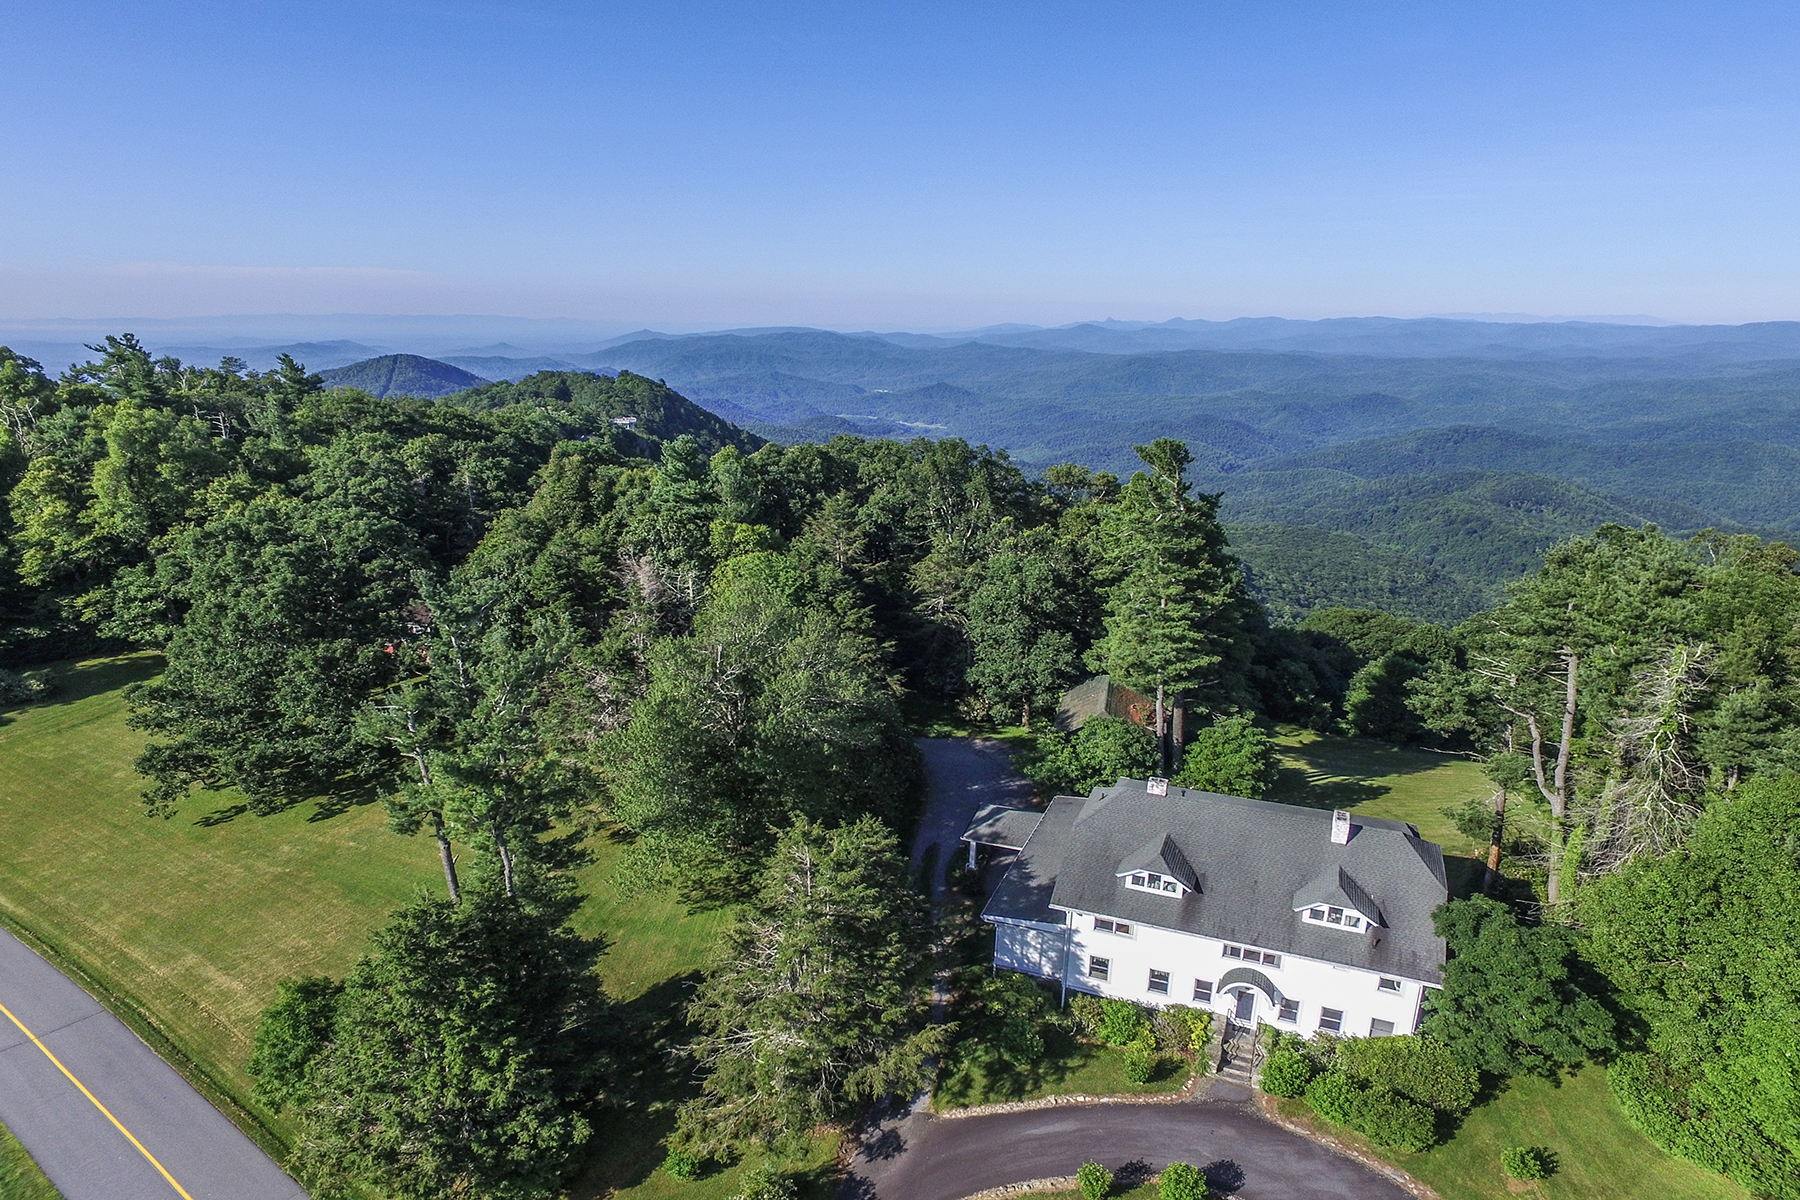 Single Family Home for Active at BLOWING ROCK 460 Pinnacle Ave Blowing Rock, North Carolina 28605 United States